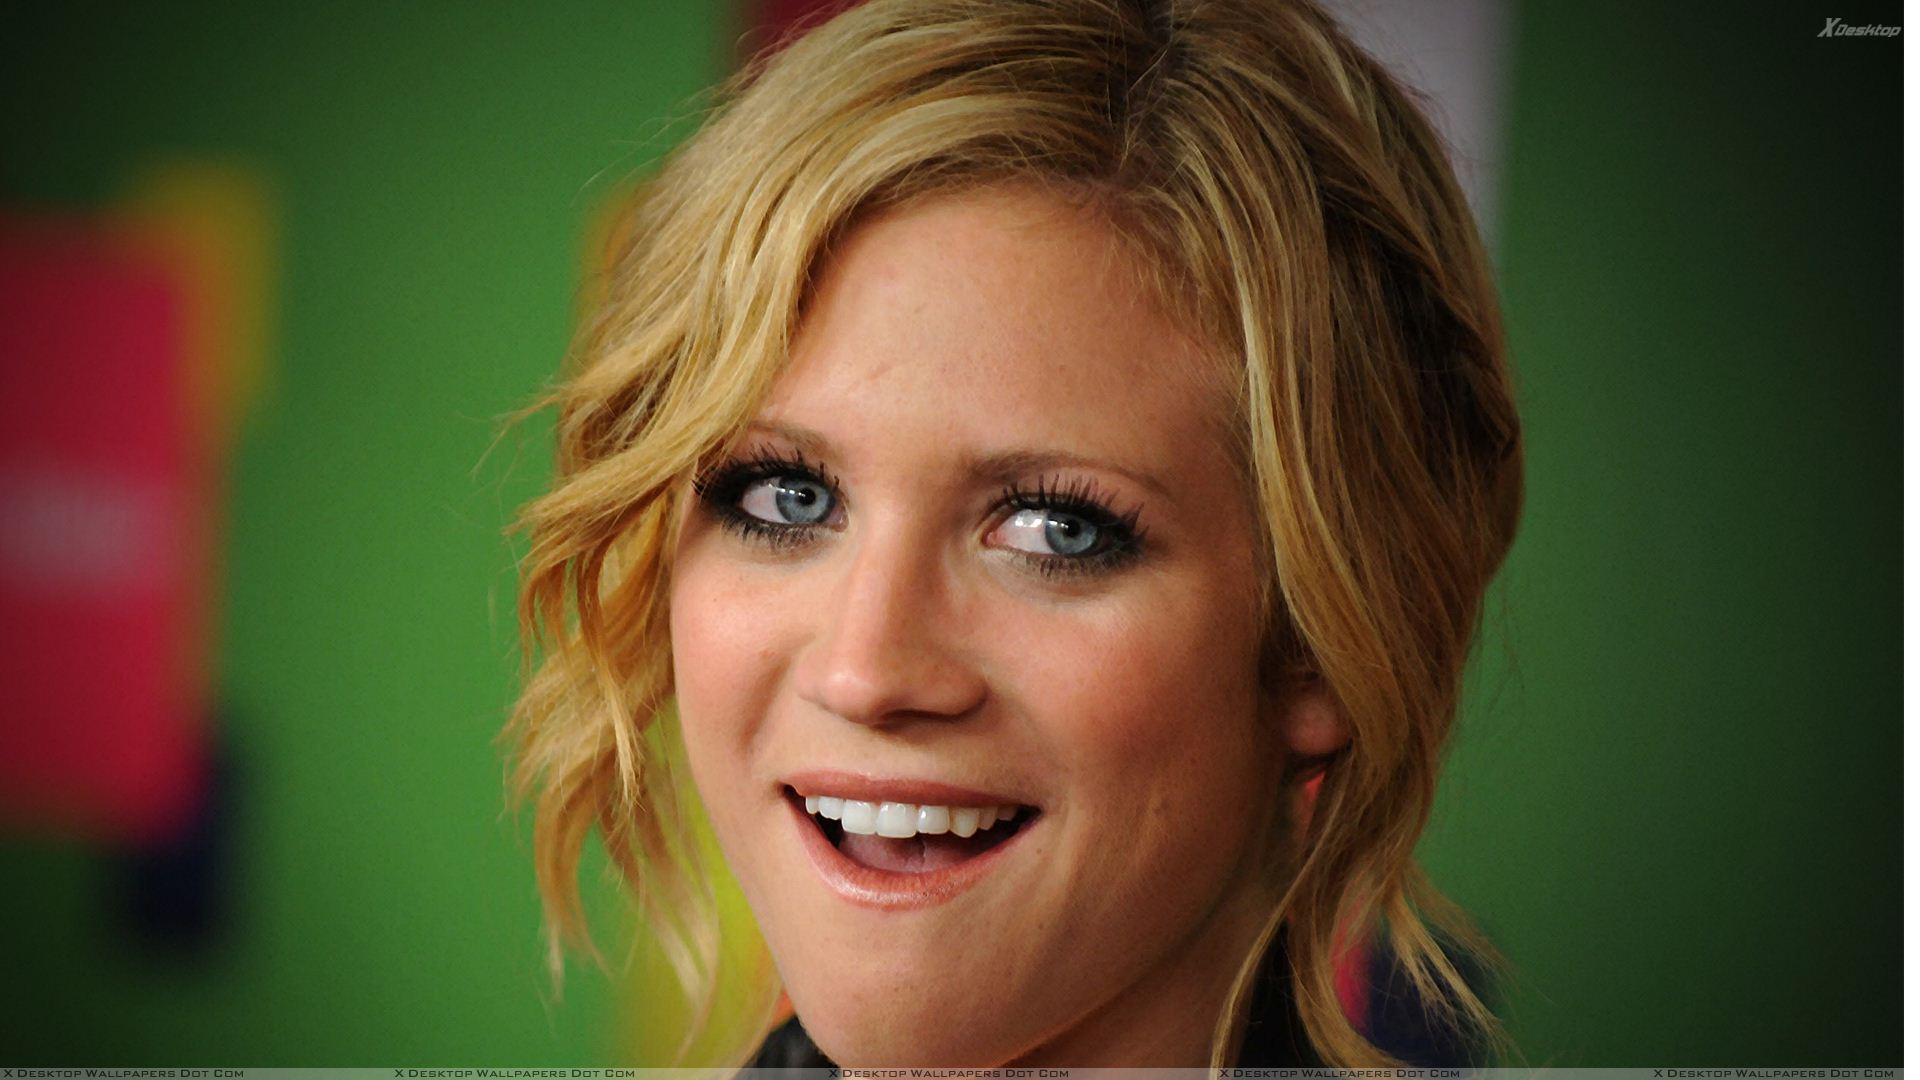 Tits Is a cute Brittany Snow naked photo 2017